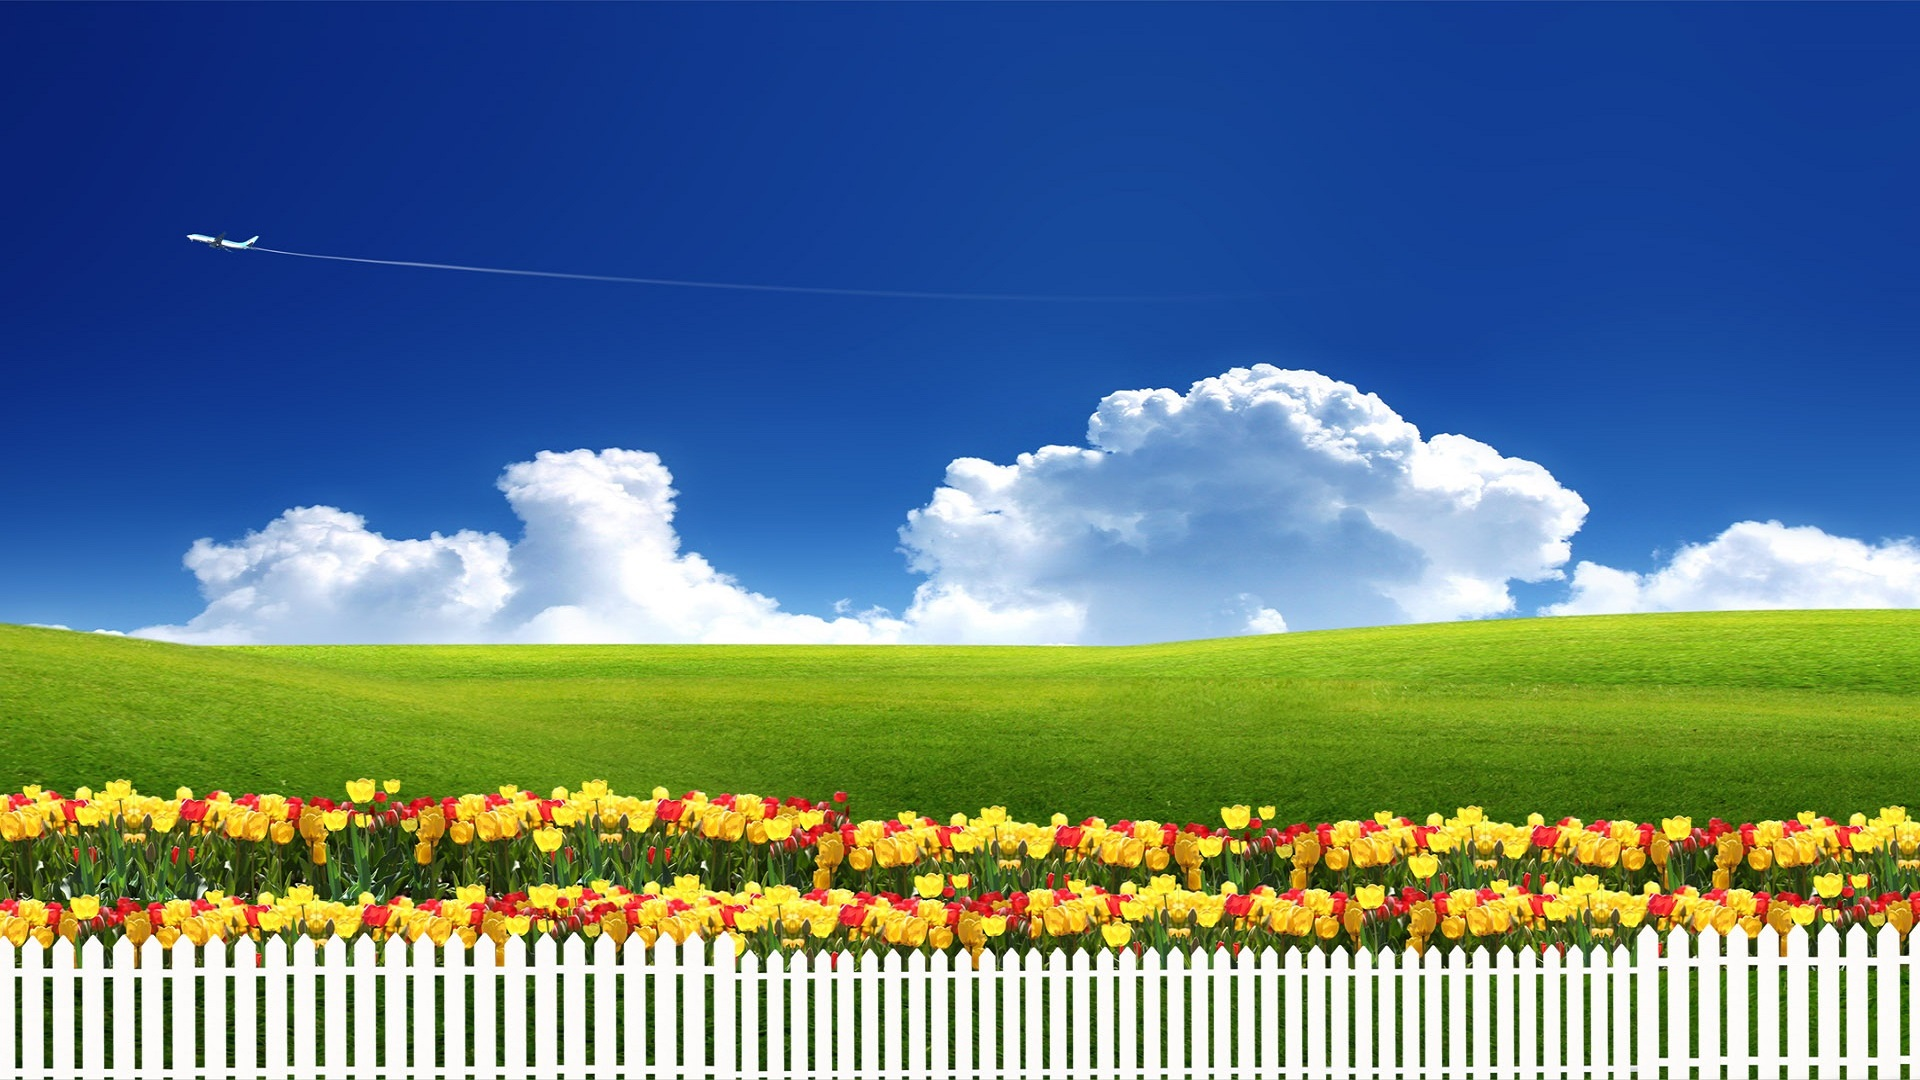 summerseasonhdfreewallpapersfordownloaded hd wallpaper